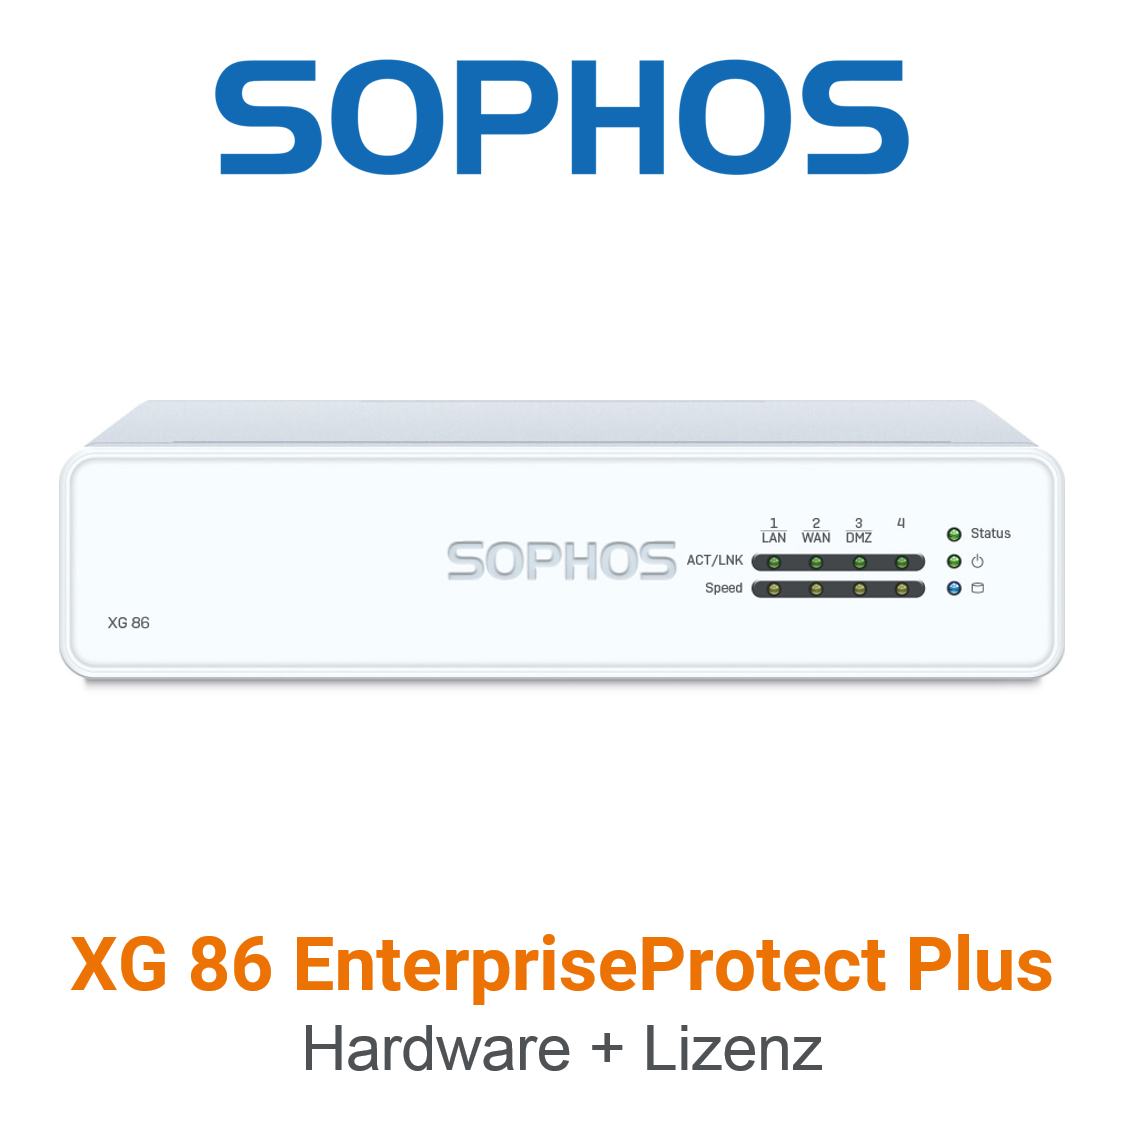 Sophos XG 86 EnterpriseProtect Plus Bundle (Hardware + Lizenz)